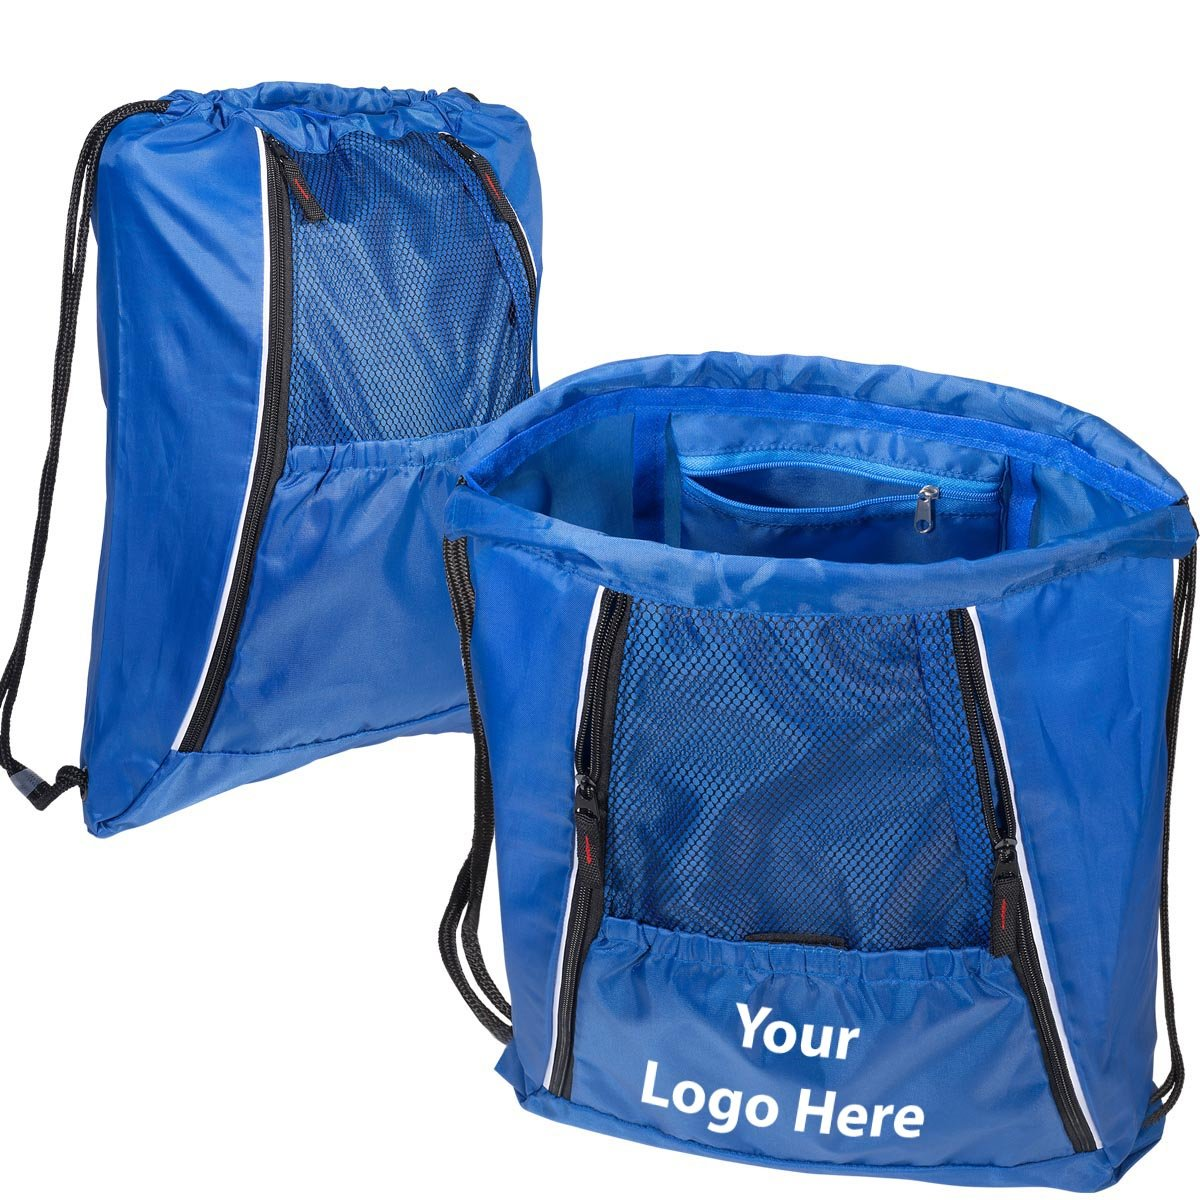 Multi Pocket String A Sling Backpack - 25 Quantity - $8.45 Each - PROMOTIONAL PRODUCT / BULK / BRANDED with YOUR LOGO / CUSTOMIZED by Sunrise Identity